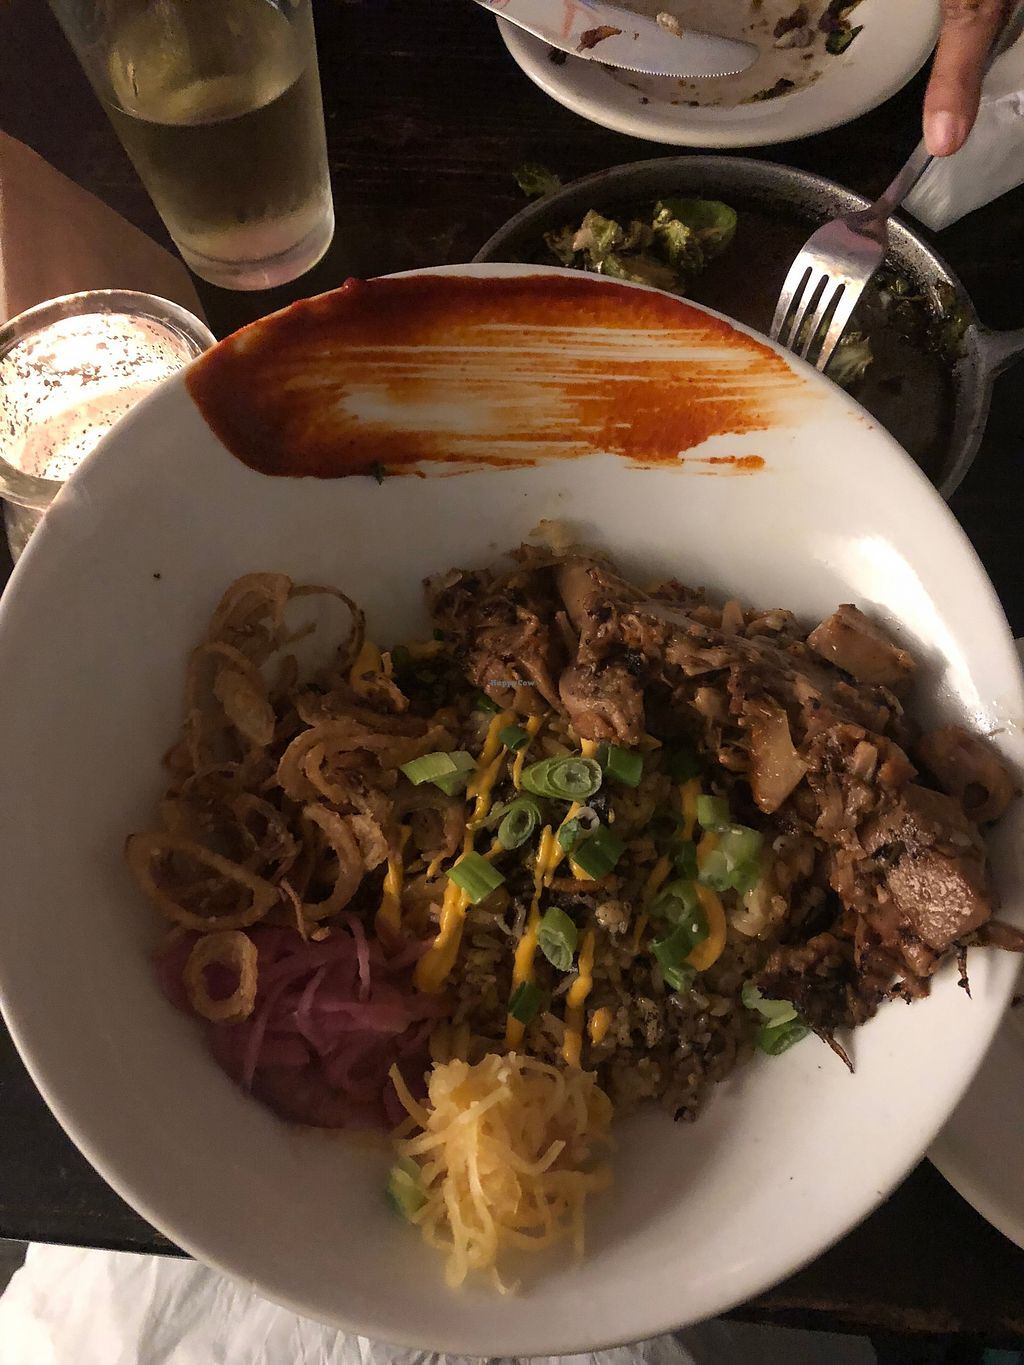 """Photo of L.A. Gastronomy  by <a href=""""/members/profile/JanaFisher"""">JanaFisher</a> <br/>Korean BBQ jackfruit <br/> February 5, 2018  - <a href='/contact/abuse/image/84517/355148'>Report</a>"""